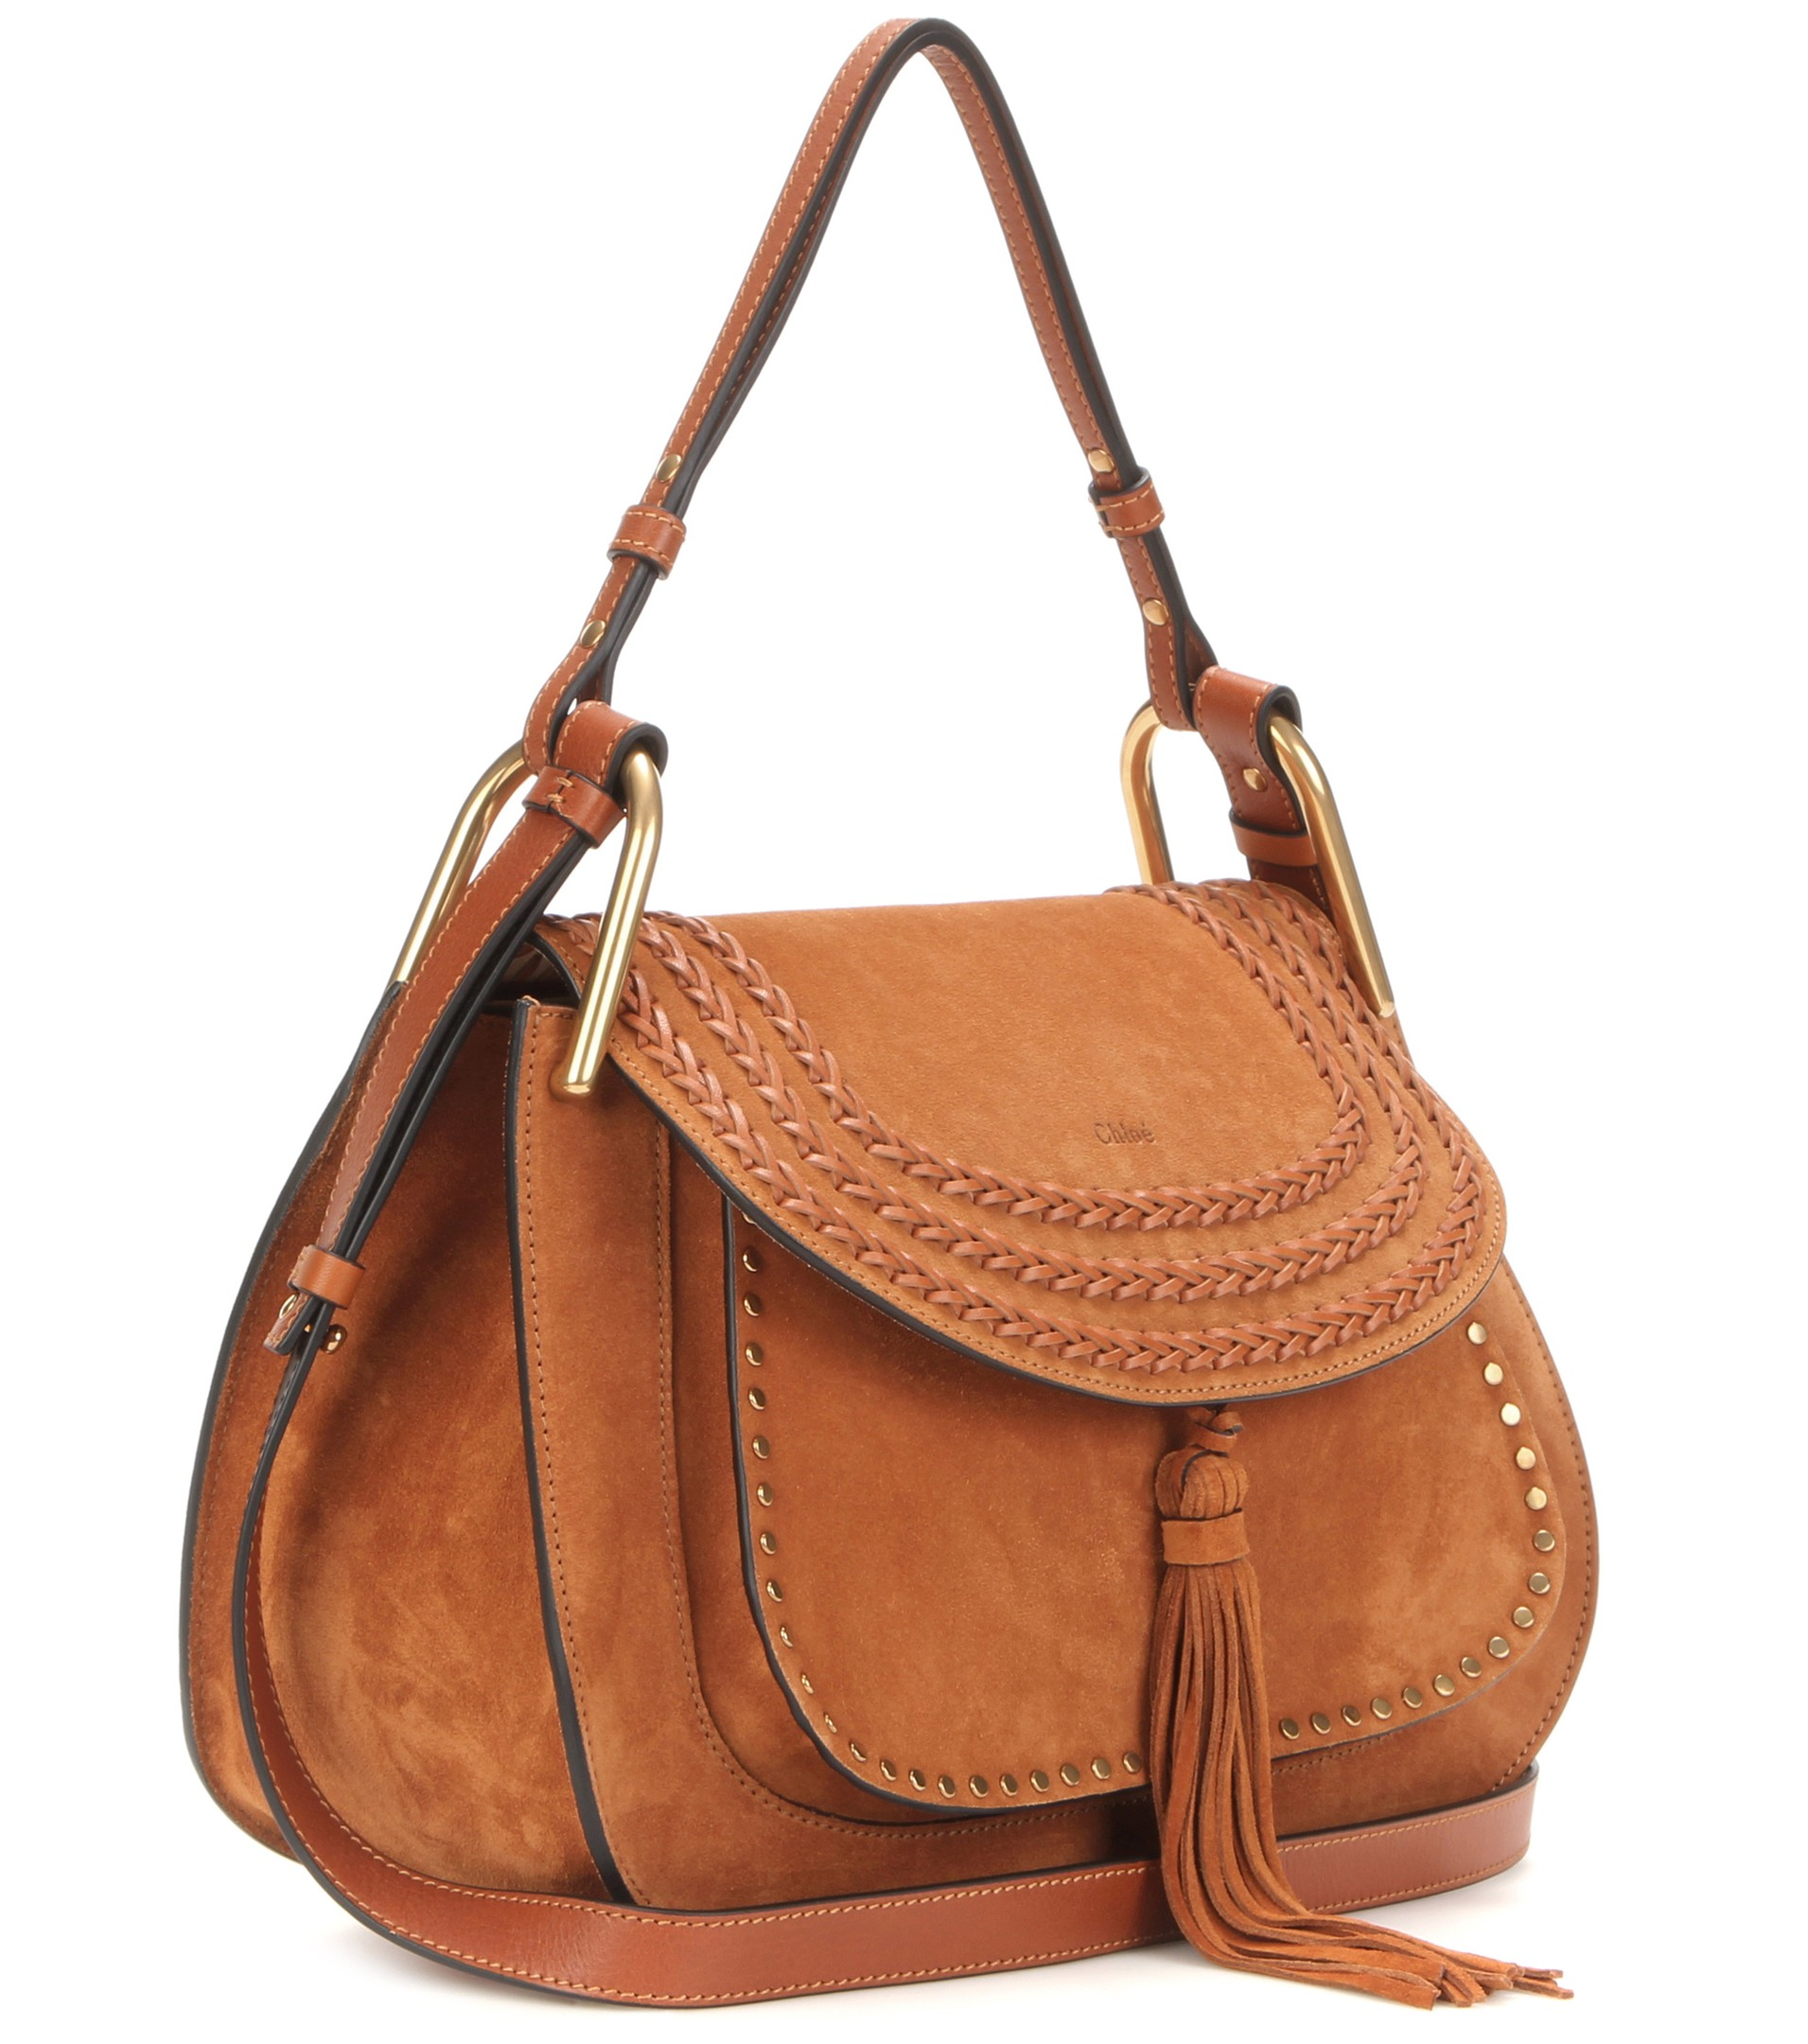 064091481f801 Chloé Hudson Small Suede Shoulder Bag in Brown - Lyst